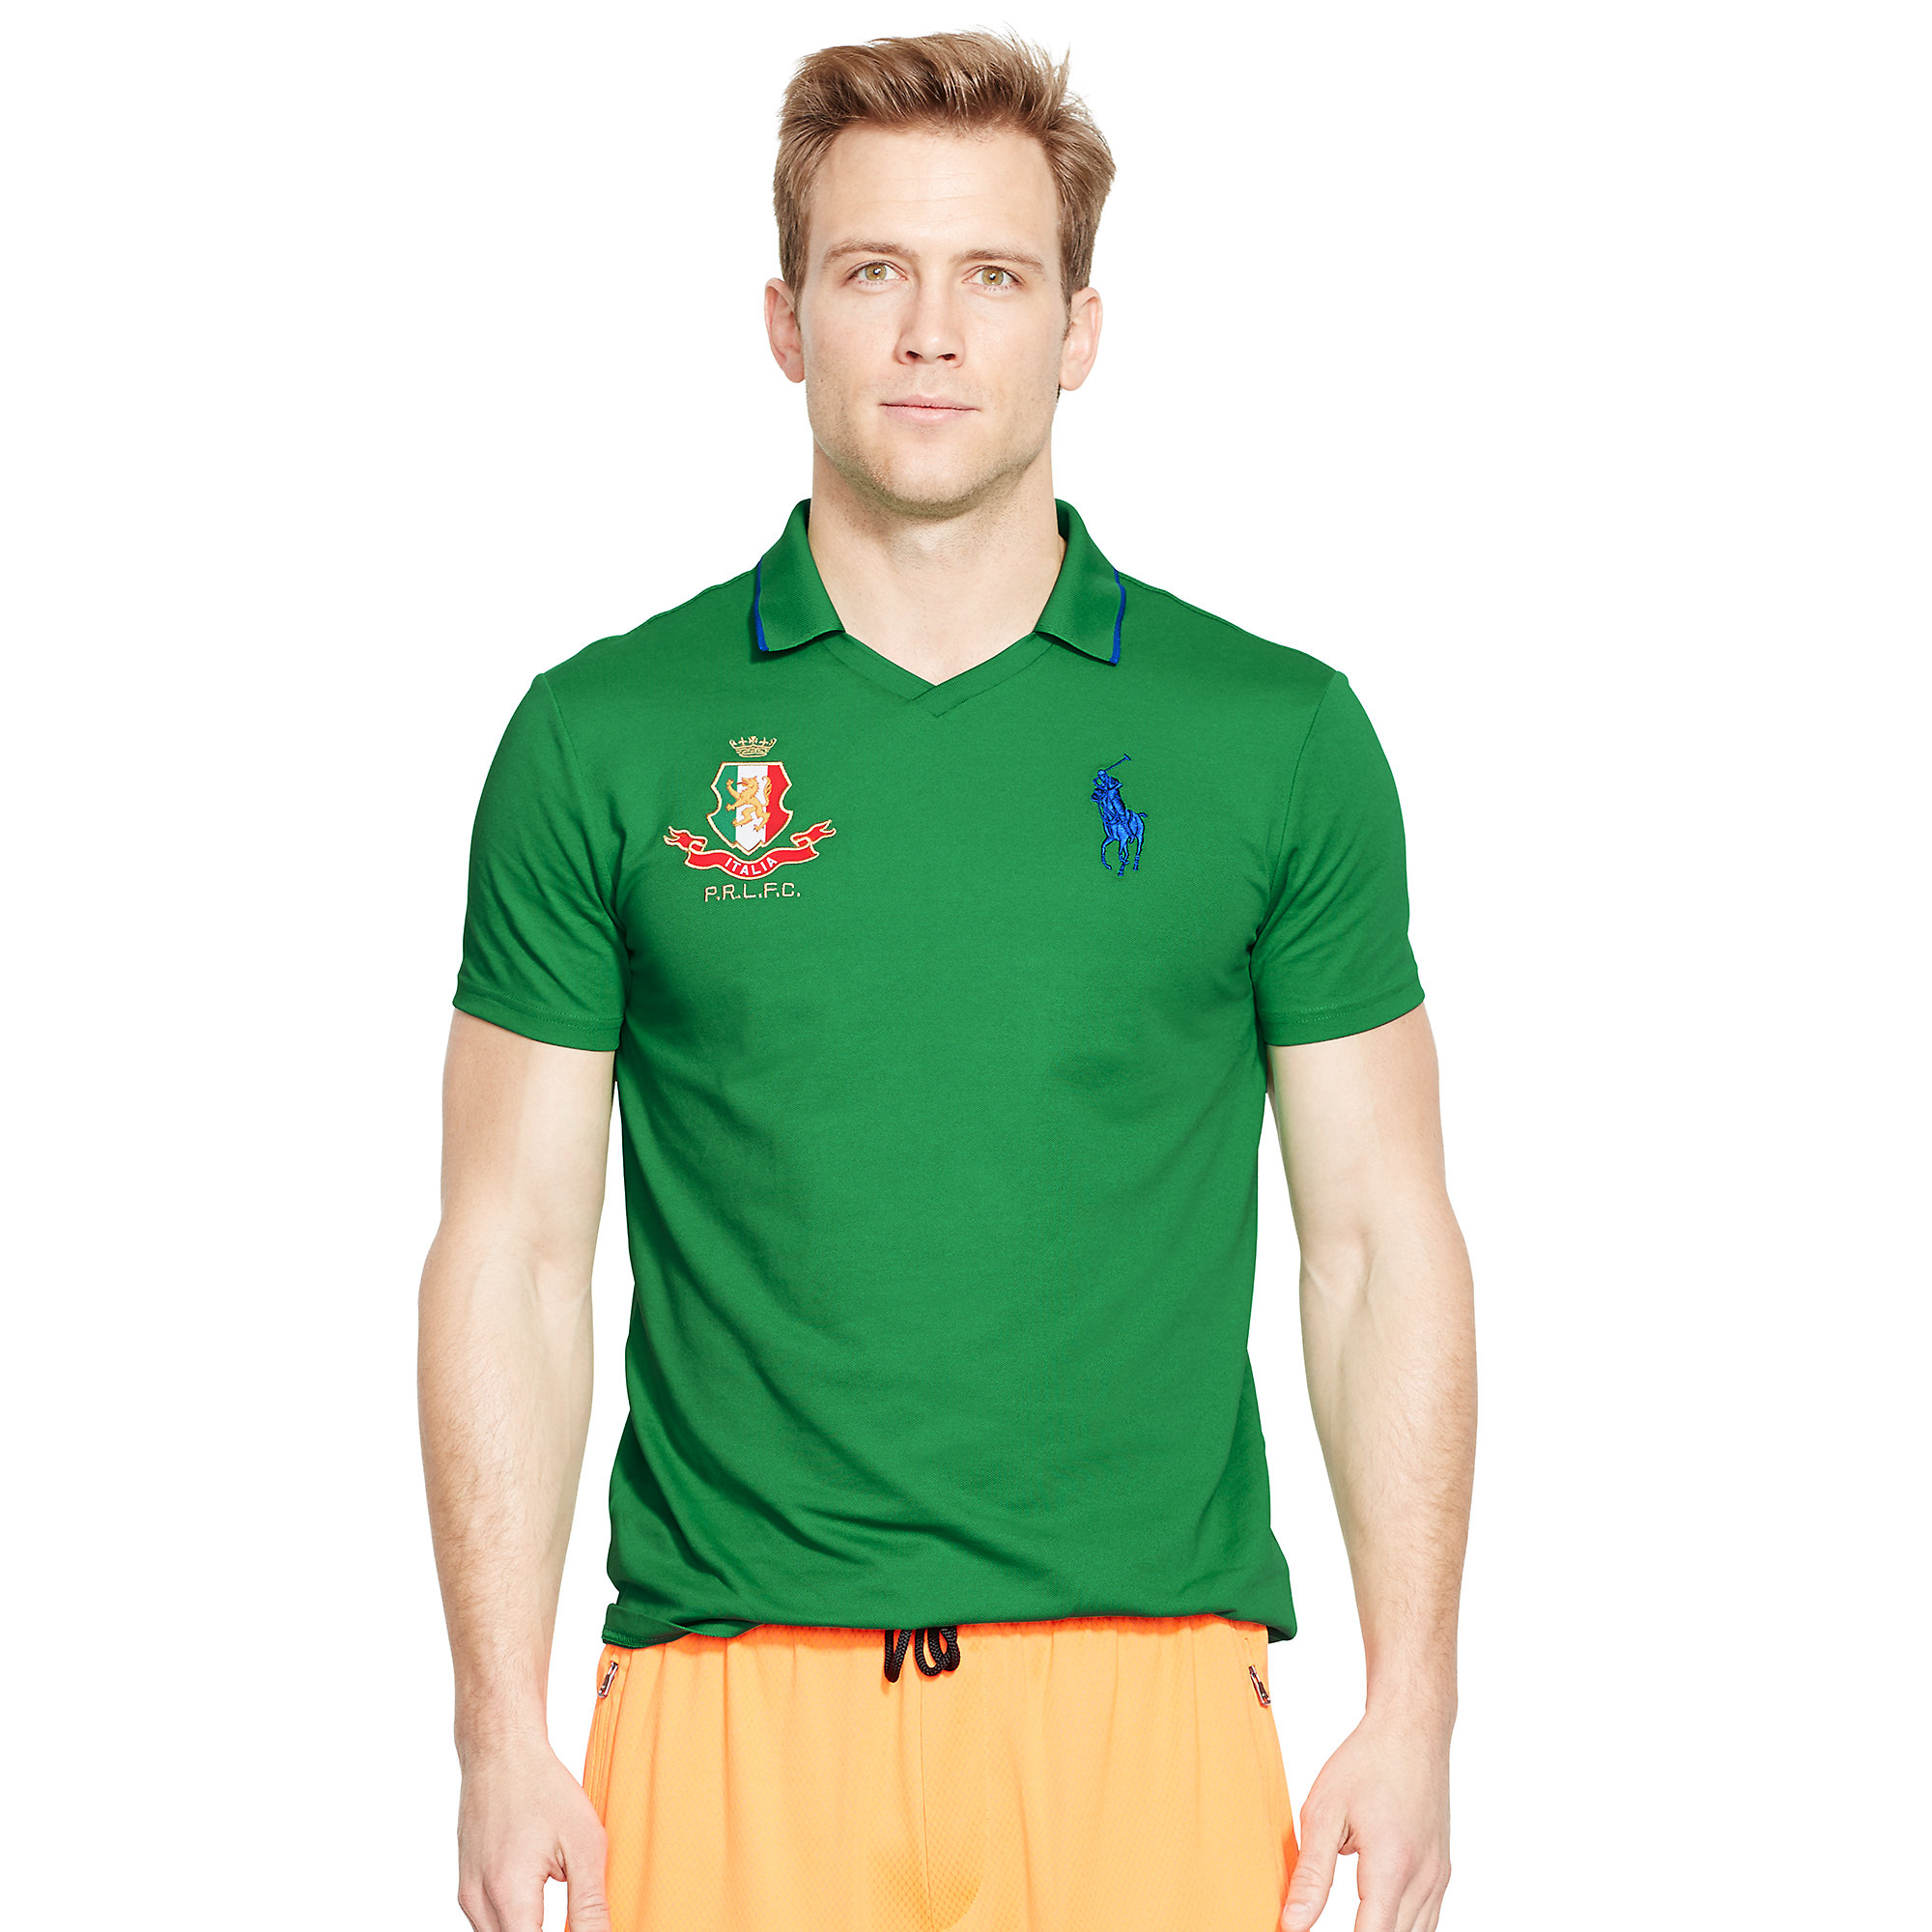 Lyst Ralph Lauren Italy Polo Shirt In Green For Men: man in polo shirt